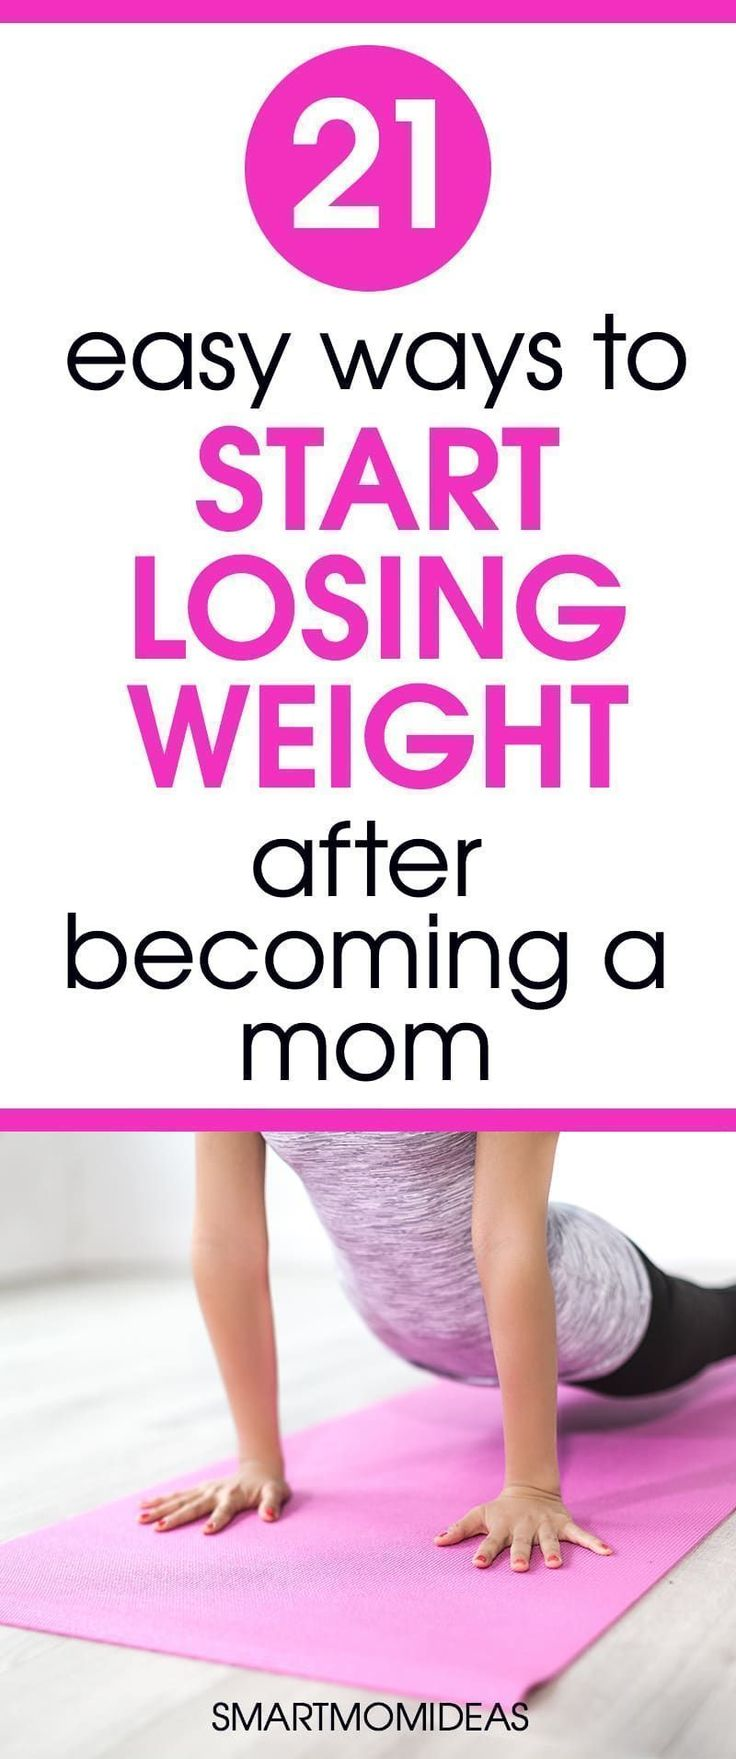 Do you need a baby weight loss plan? I mean the before and after baby weight loss can be a challenge. Meal ideas for pregnancy weightloss is included as well as diet plan to lose baby weight | losing weight after baby | pregnancy weightloss diet | baby weight loss work outs | how to lose baby weight. #dietplanafterbaby #weightlossideas #loseweightafterbaby #weightlossafterpregnancy